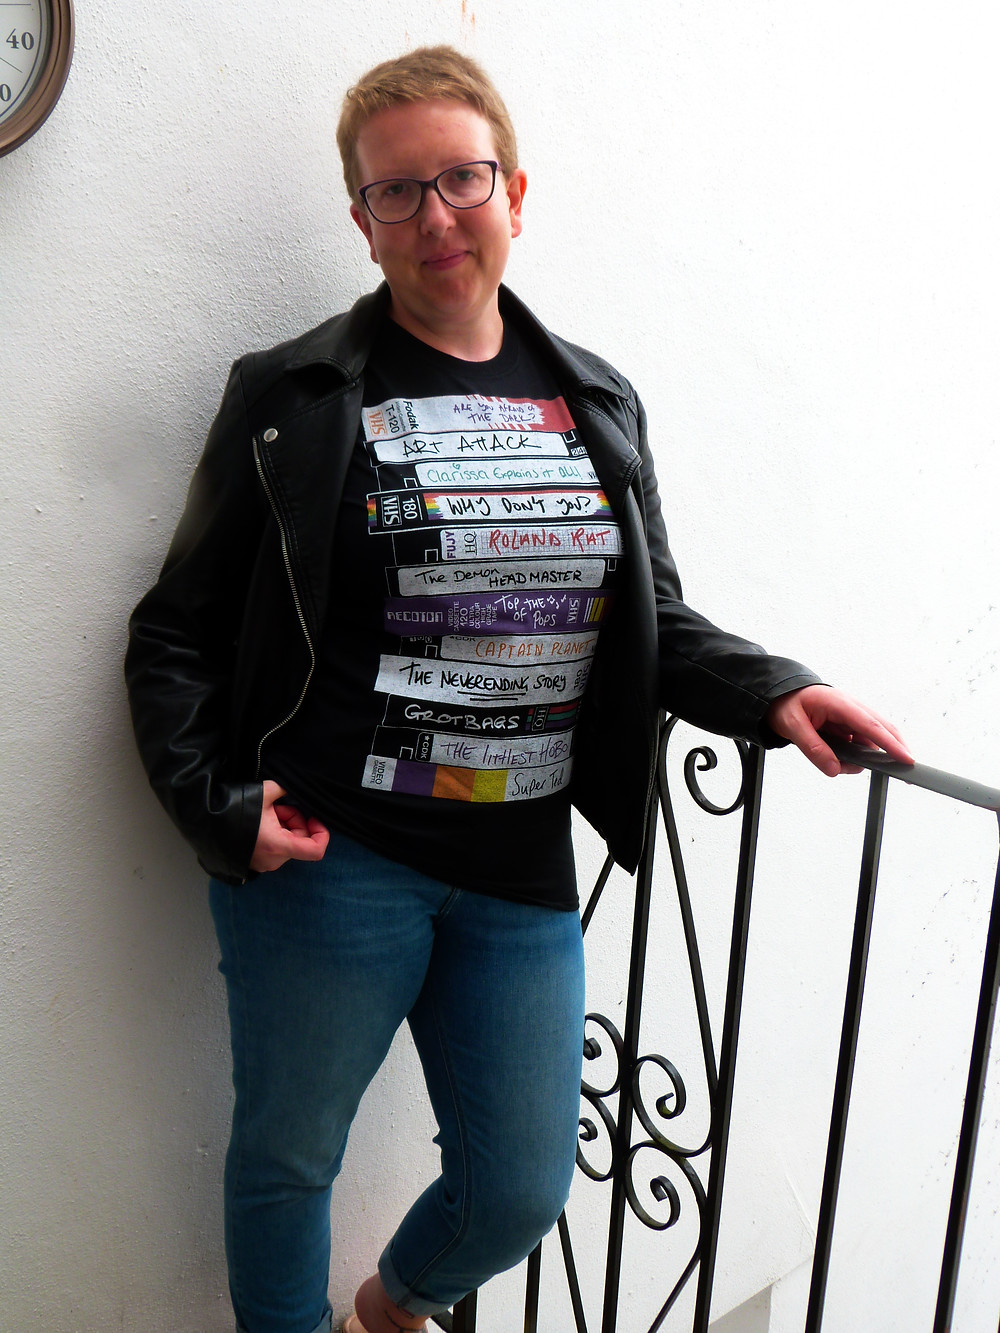 Sarah standing against a white wall wearing a black t shirt with vhs tapes on the front with names of old tv shows on and blue jeans